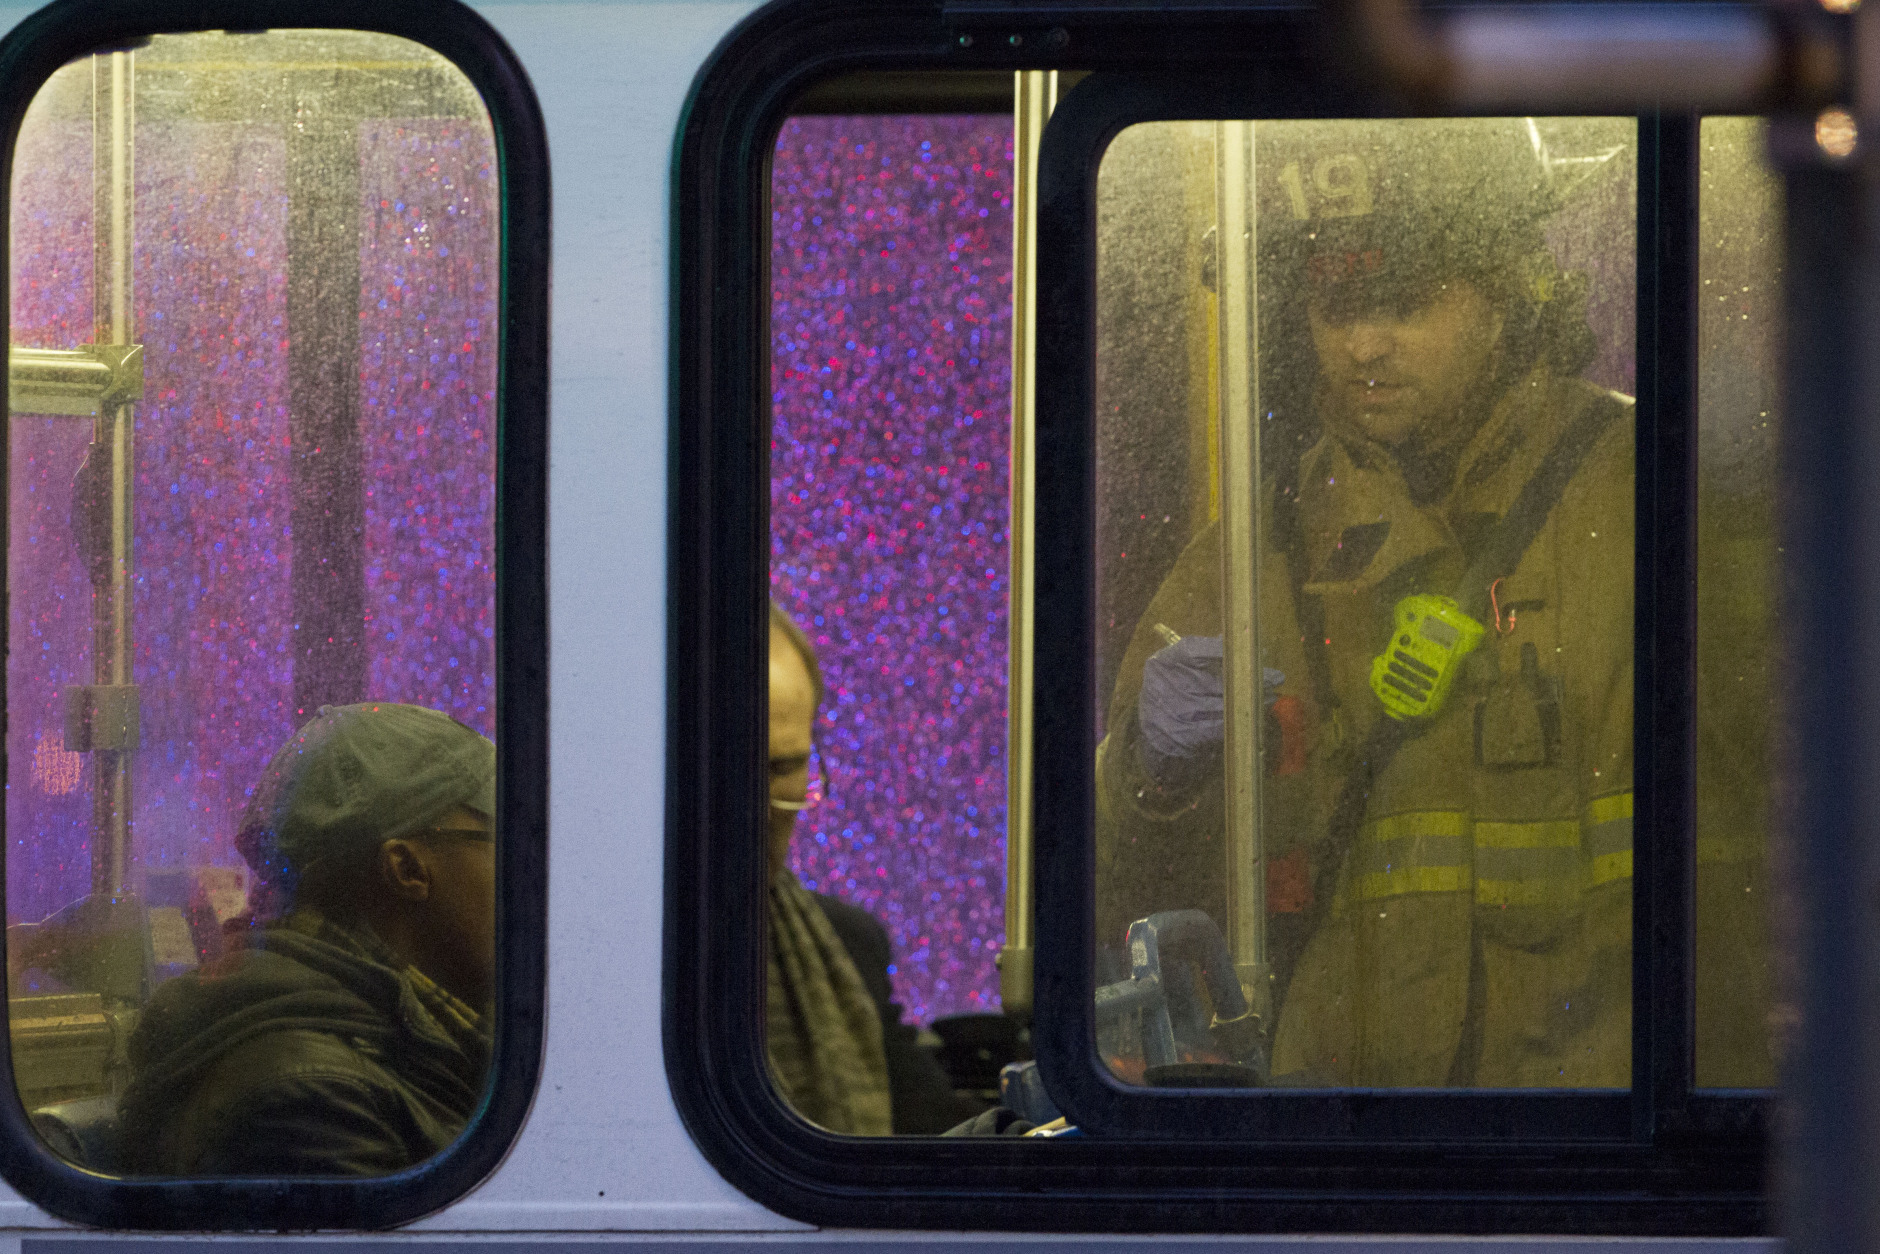 A firefighter attends people on a bus to assess triage needs after people were evacuated from a smoke filled Metro subway tunnel in Washington, Monday, Jan. 12, 2015. Metro officials say one of the busiest stations in downtown Washington has been evacuated because of smoke.  Authorities say the source of the smoke is unknown.  (AP Photo/Jacquelyn Martin)